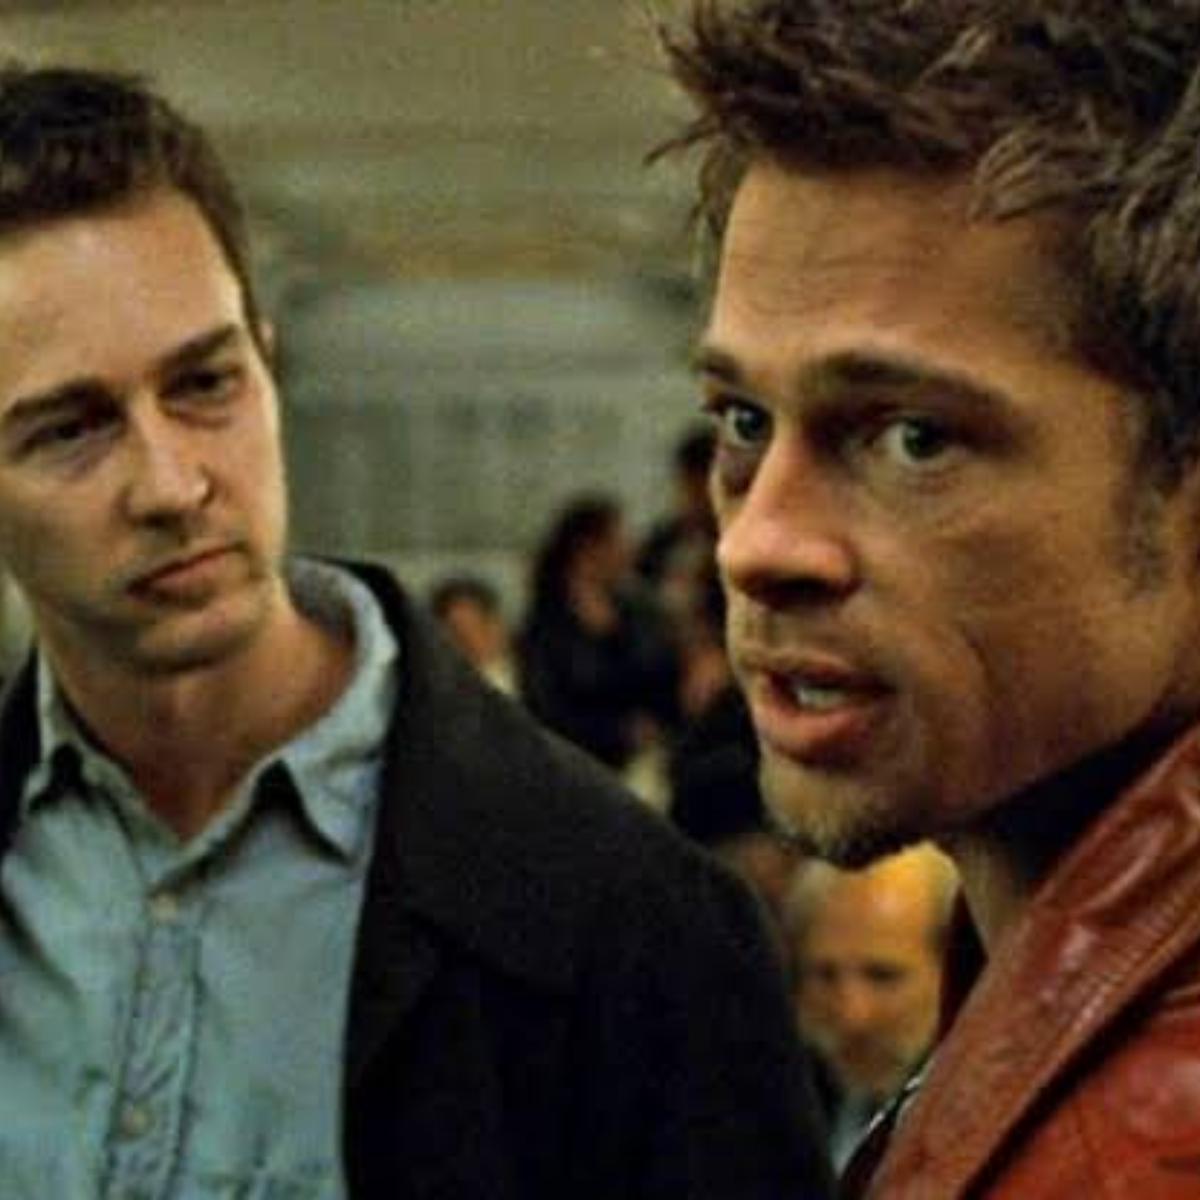 Motherless Brooklyn star Edward Norton REVEALS why Fight Club bombed at the box office